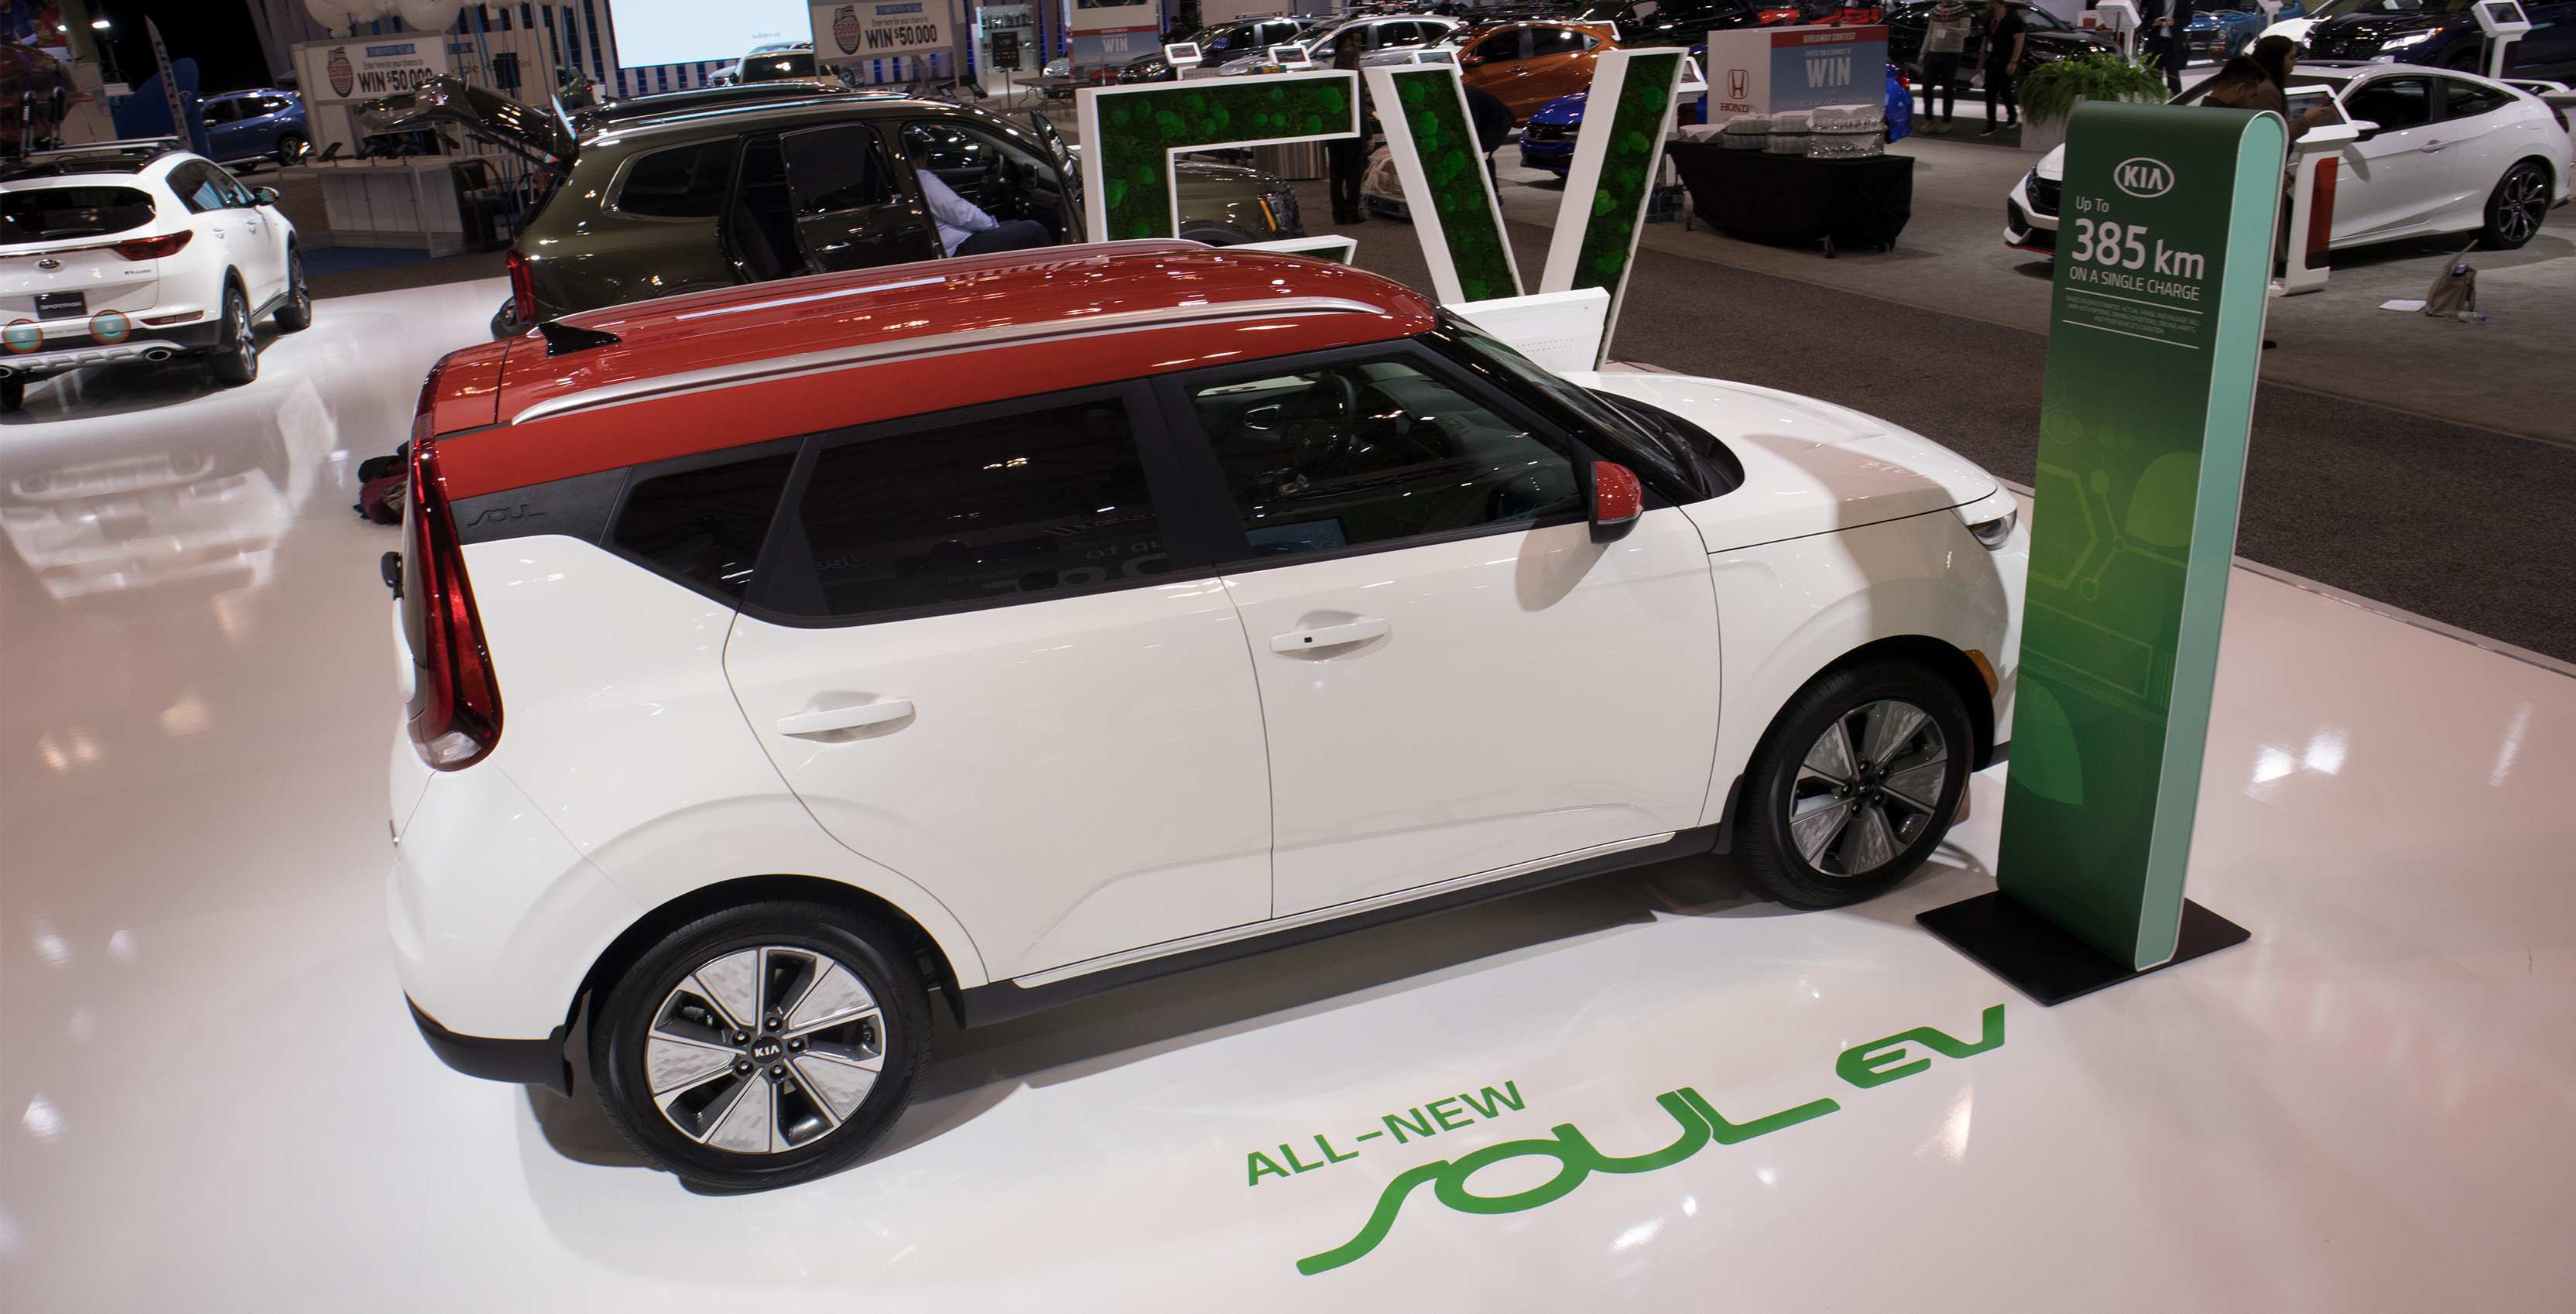 82 New 2020 Kia Soul Ev Price Photos for 2020 Kia Soul Ev Price